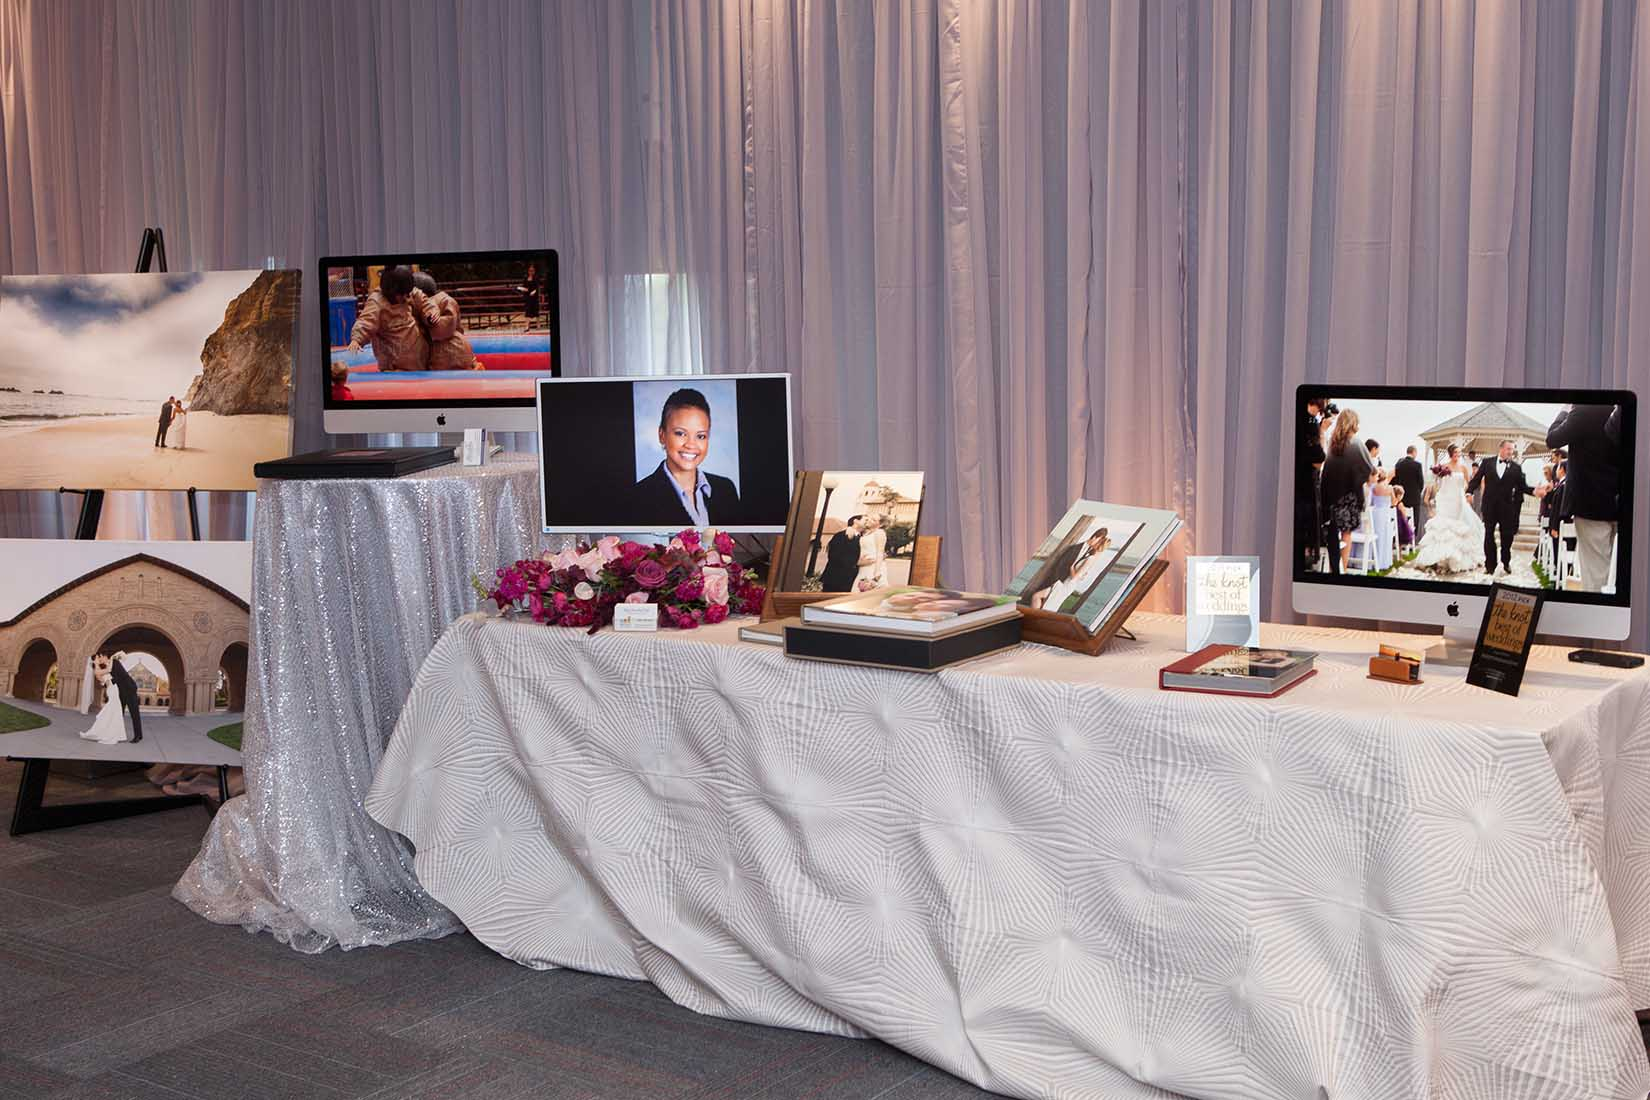 hagop's photography display during the event as a vendor